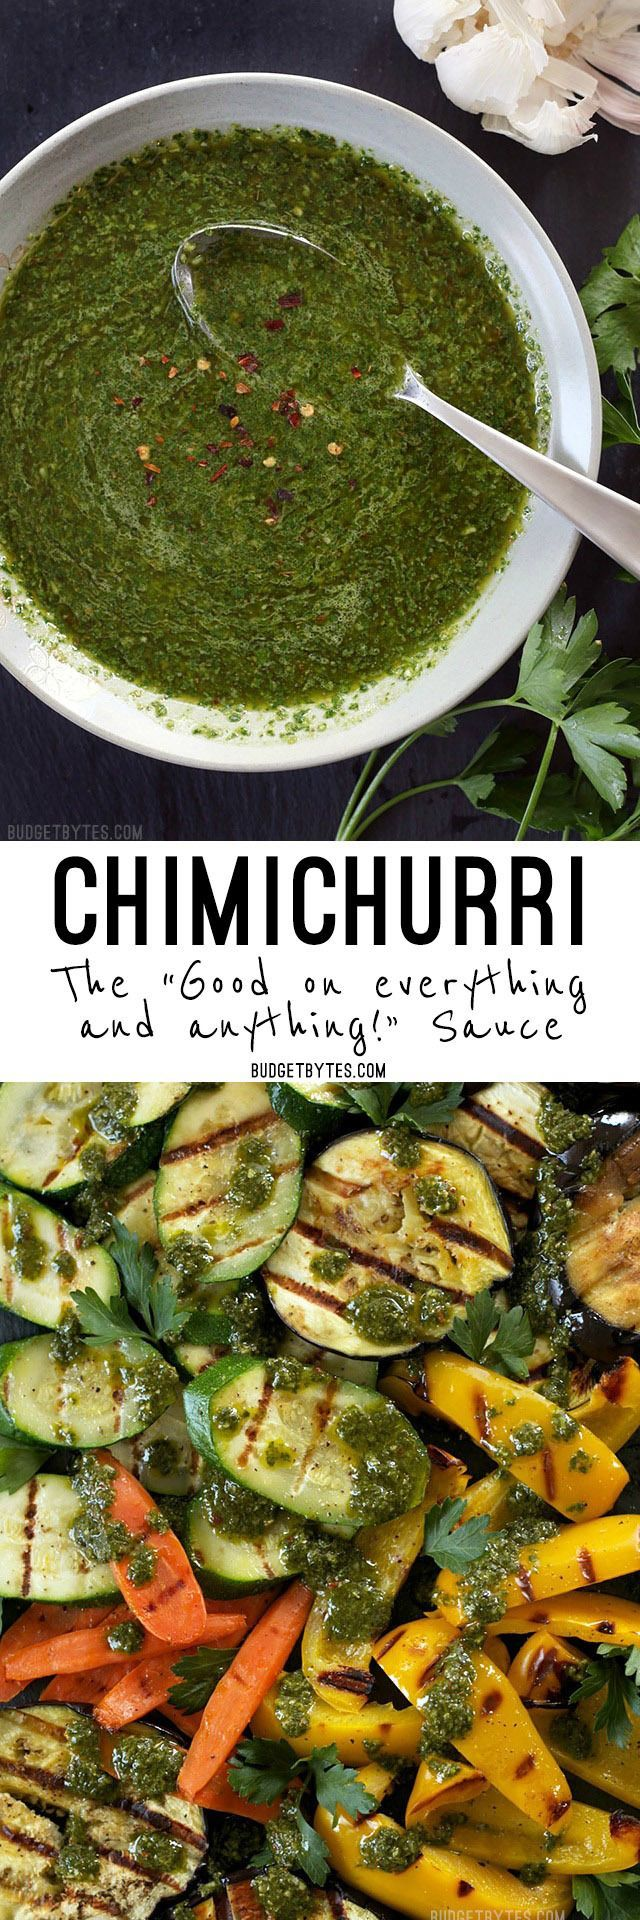 Chimichurri is a vibrant, fresh, and incredibly simple sauce that delivers big flavor to any meal. @budgetbytes